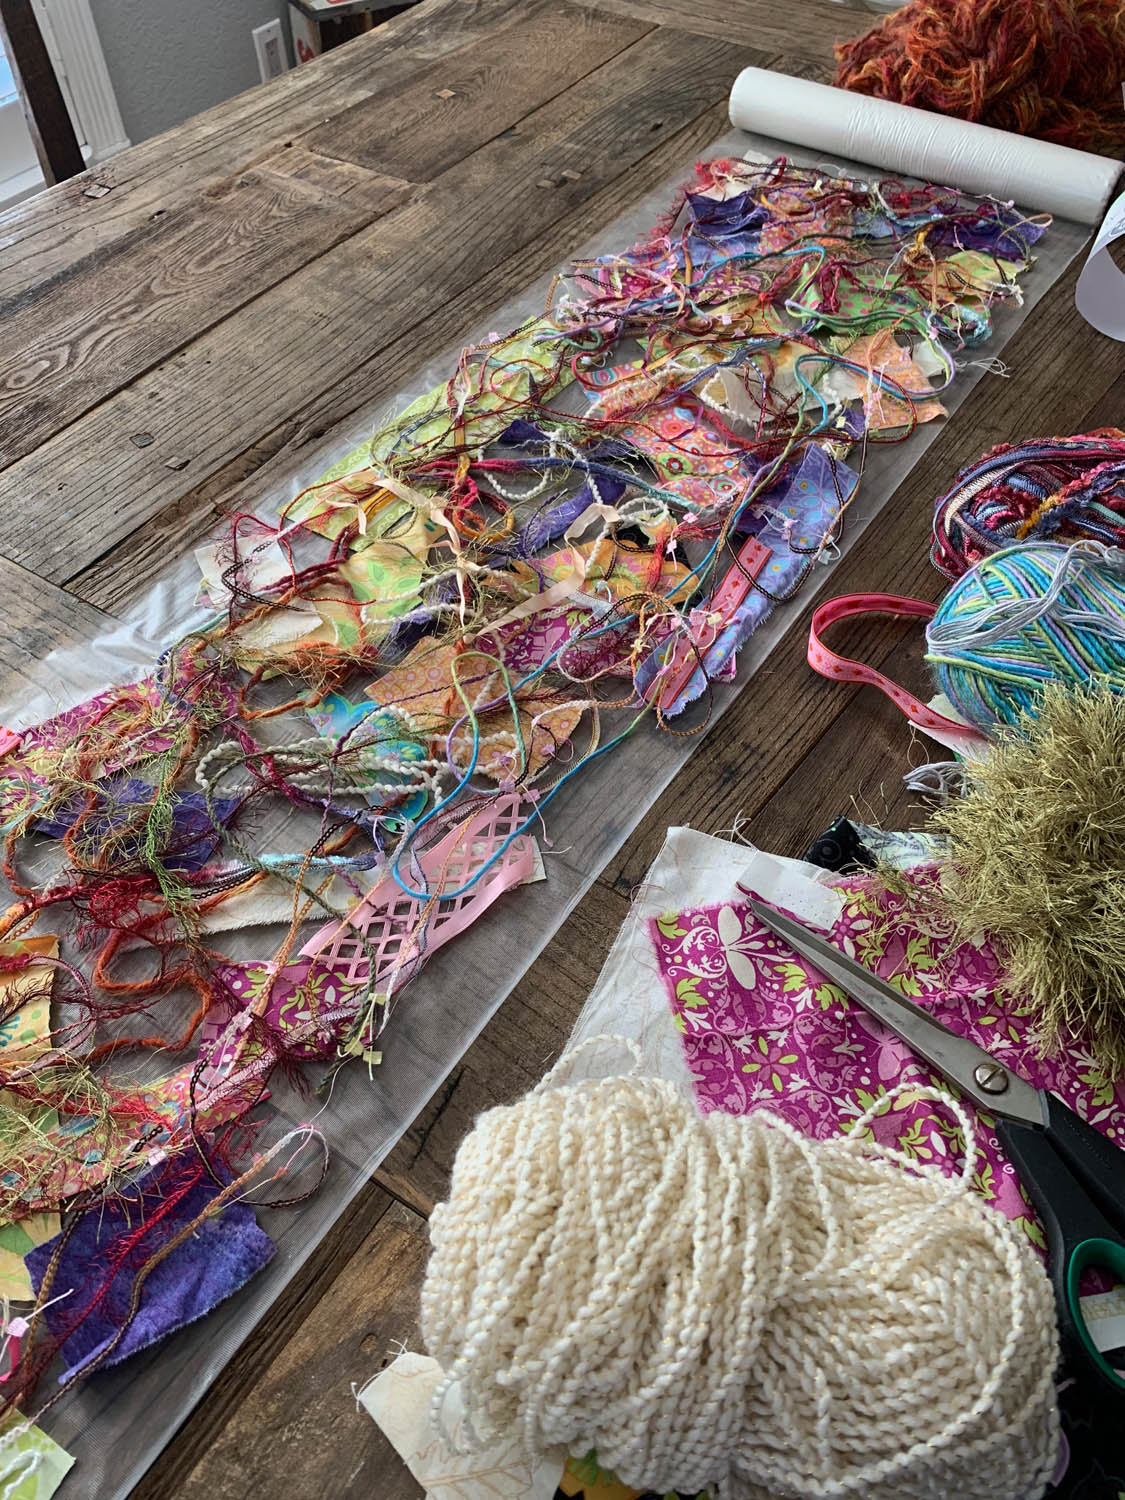 fiber scraps and bits atop Sulky Solvy to make upcycled fiber art table runner